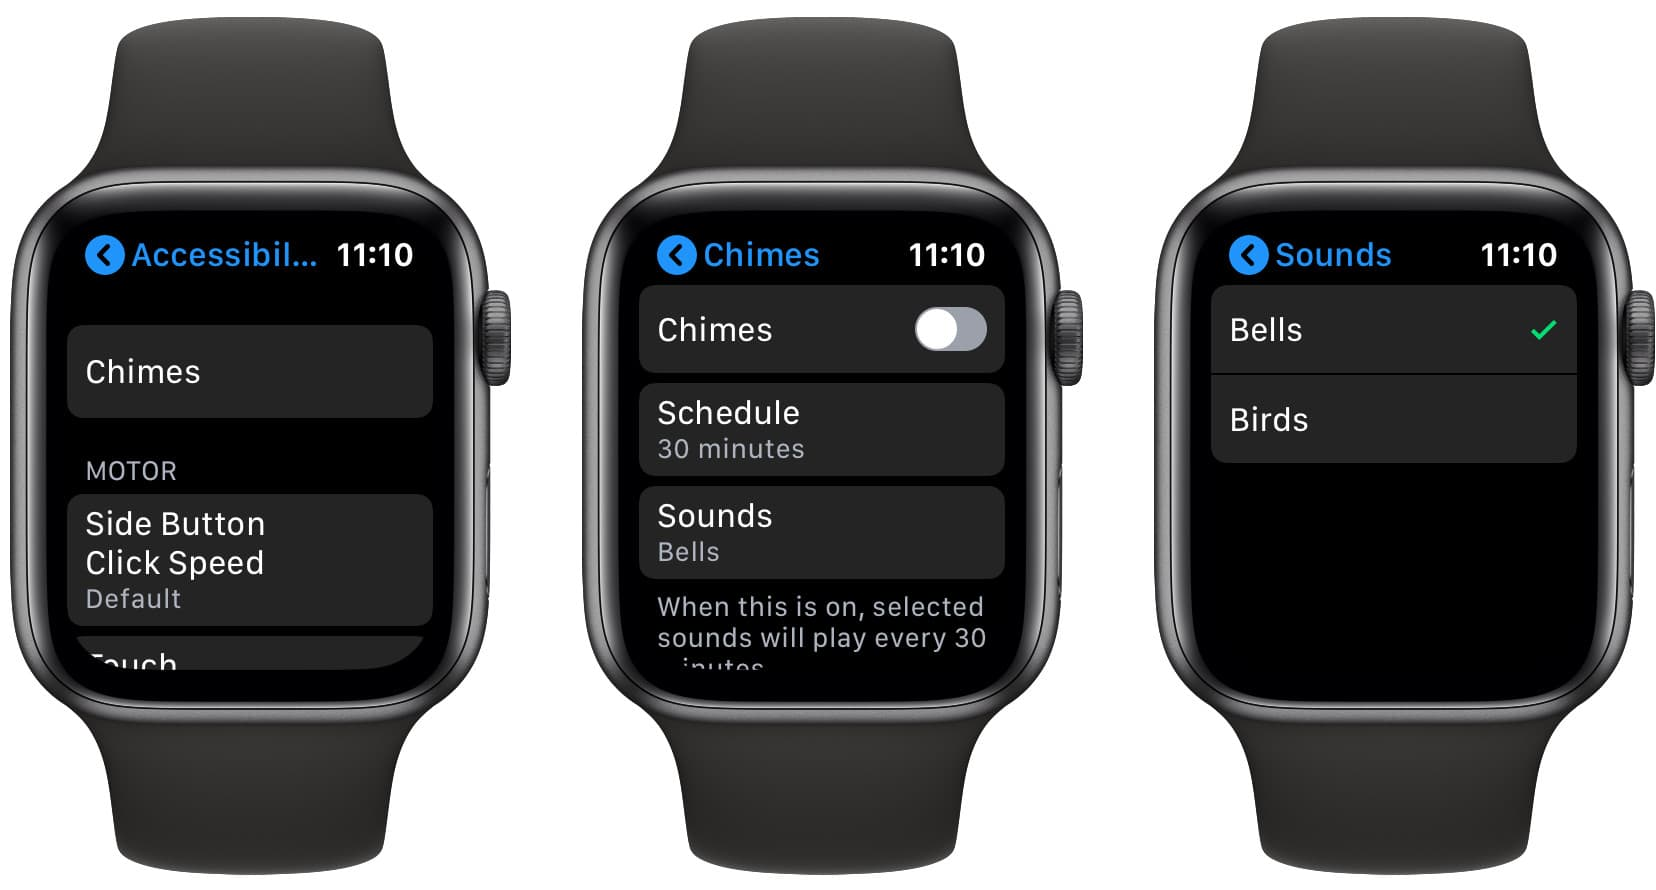 The hourly chime settings on the Apple Watch.